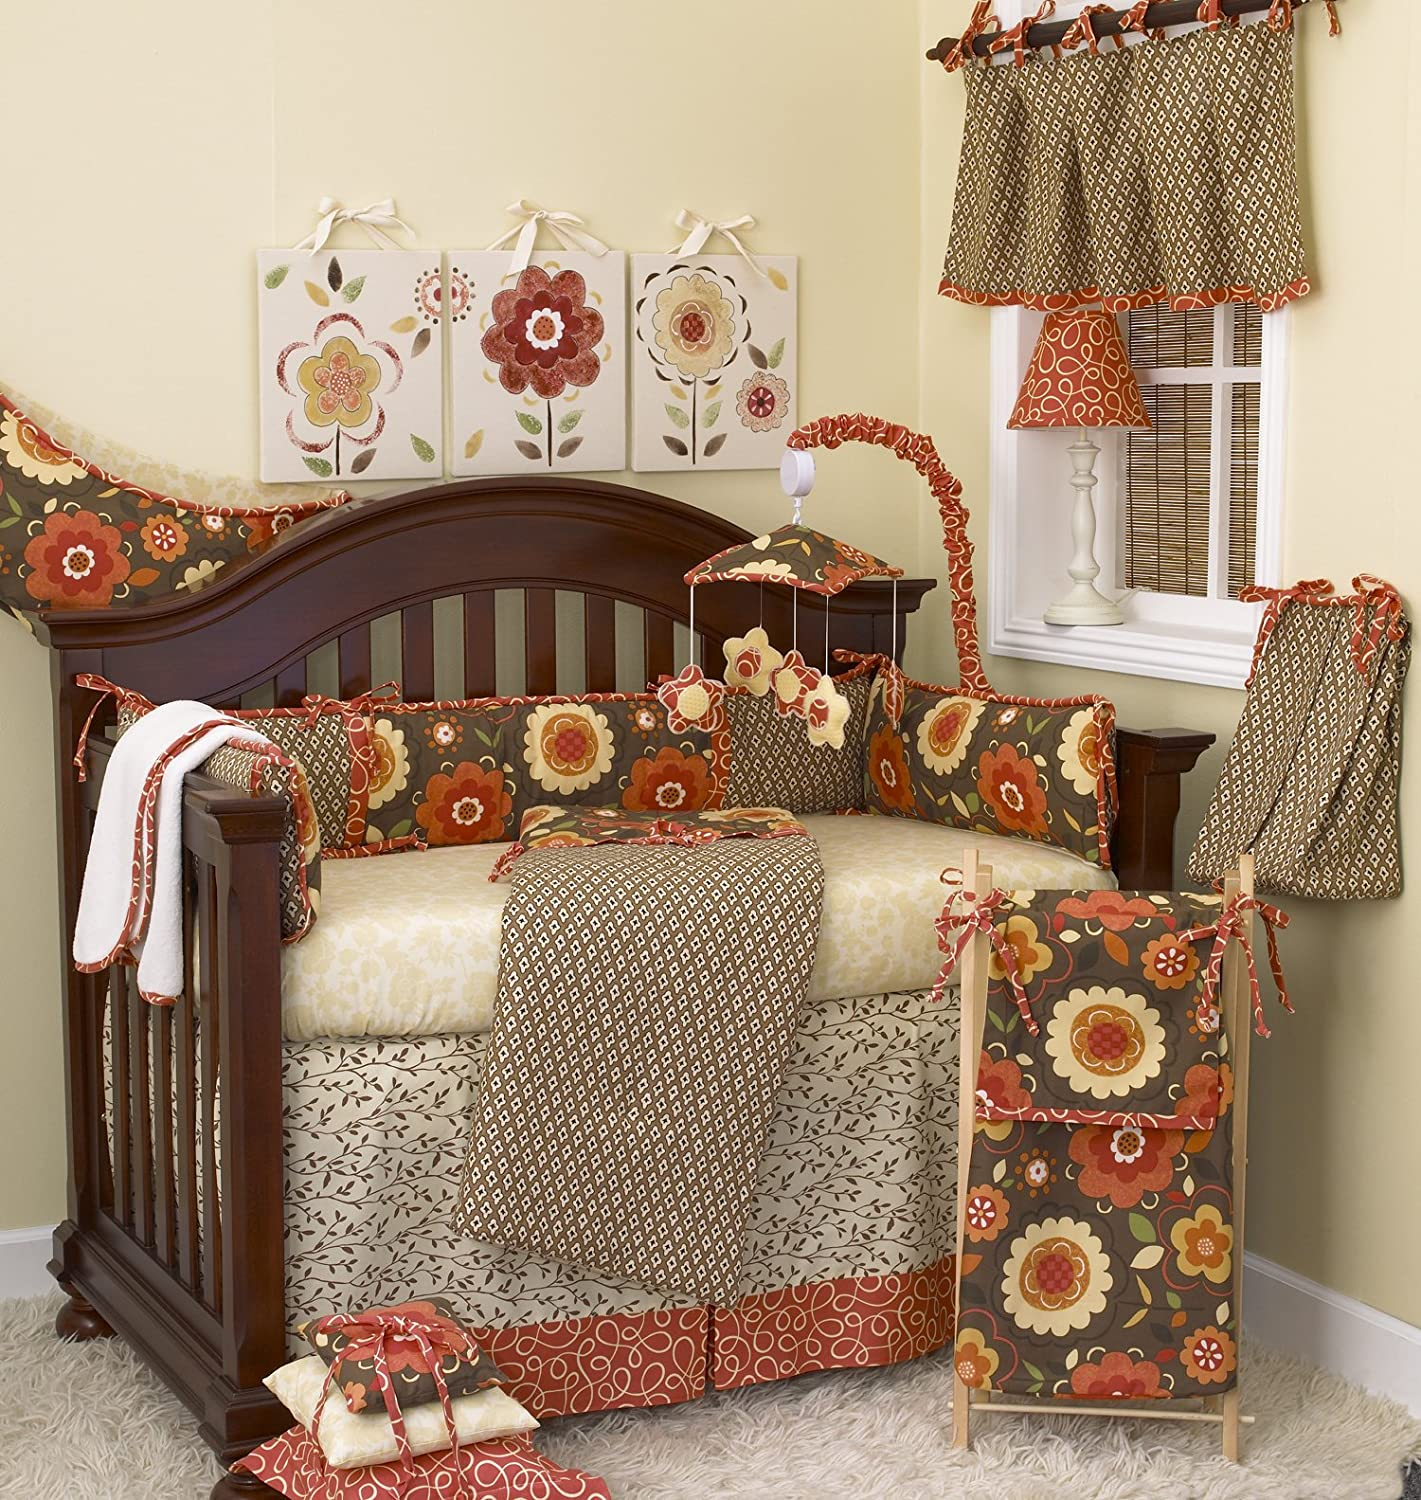 Cotton Tale Designs Peggy Sue 8 Piece Nursery Crib Bedding Set - 100% Cotton - Multi Colored Country Floral Brown Orange Yellow Tan Green Garden Flowers with Swirls - Baby Shower Gifts for Girls